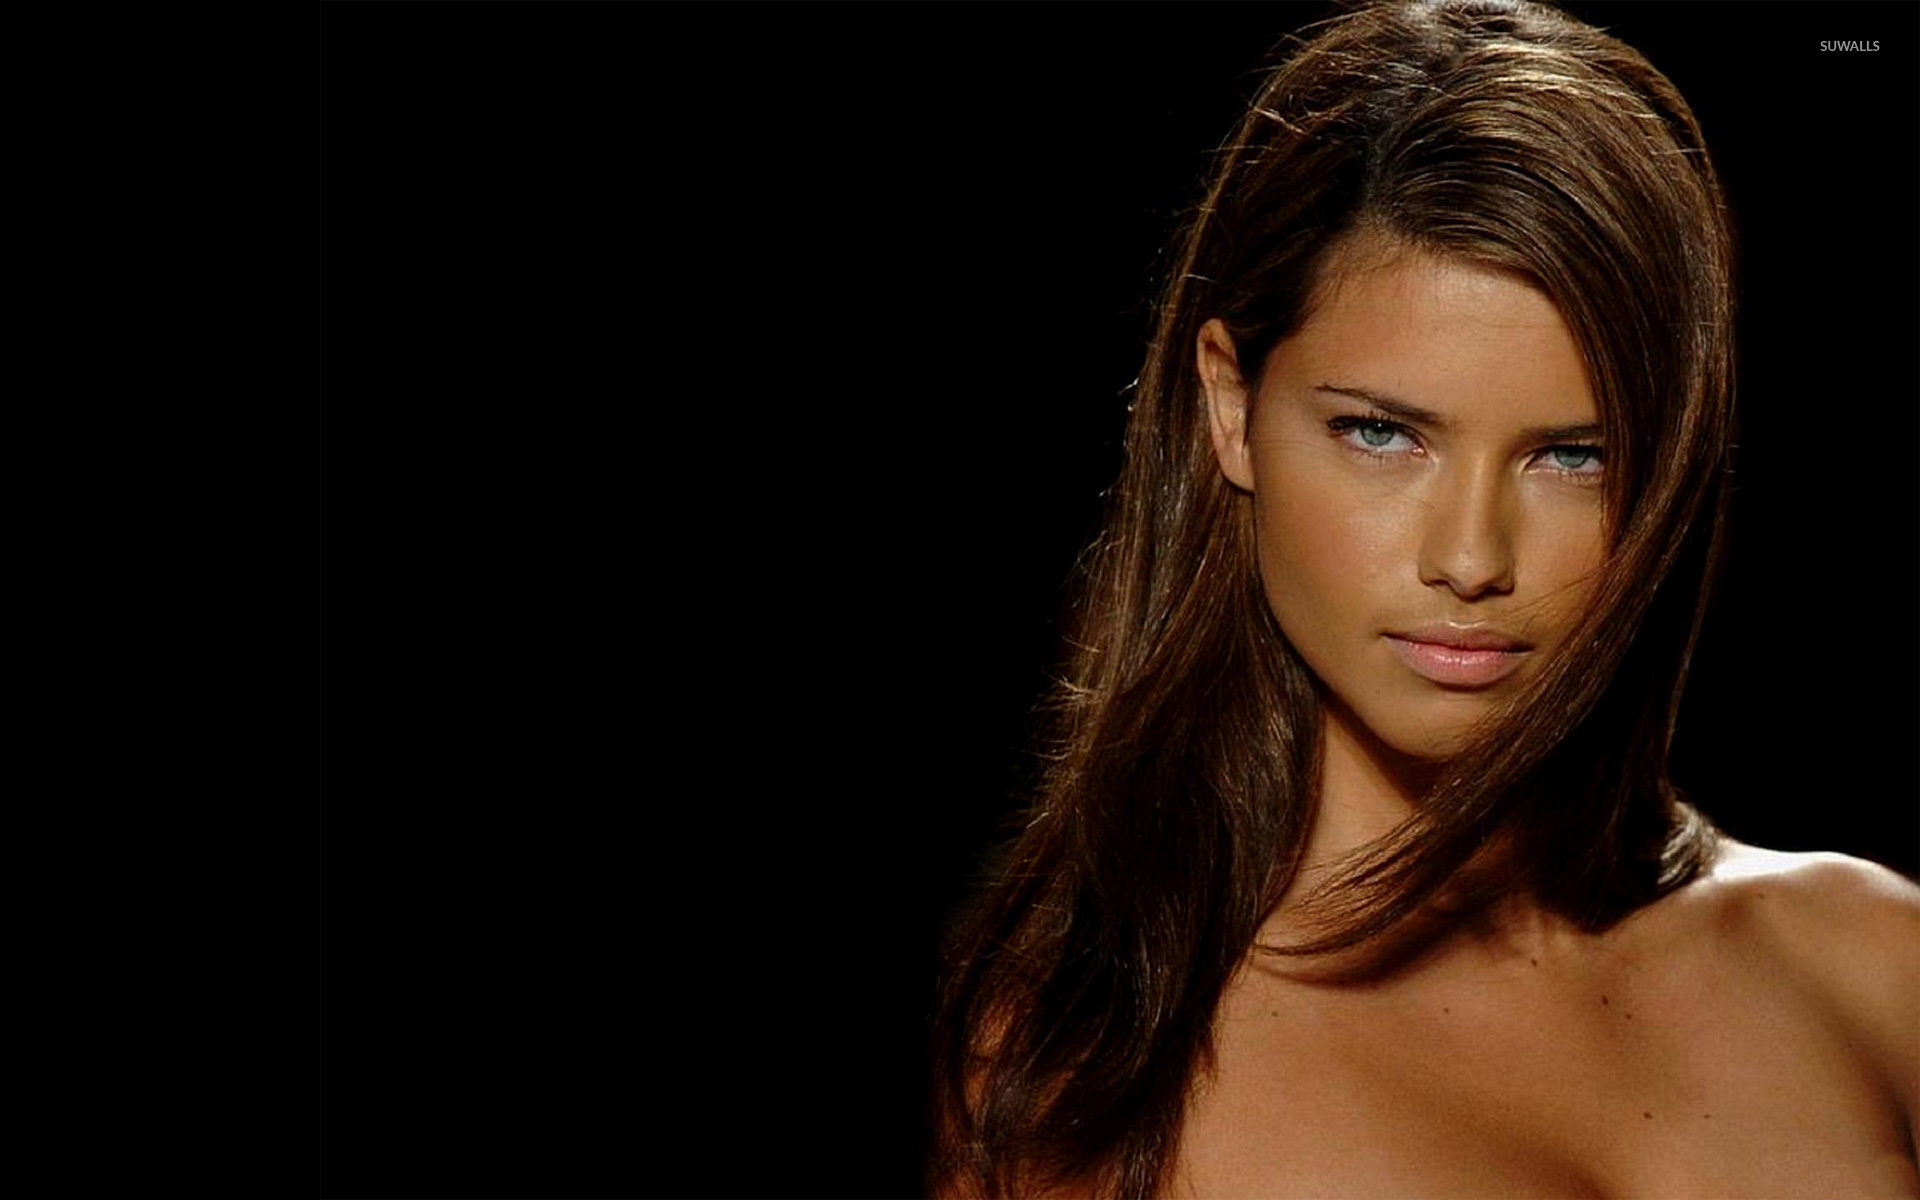 Adriana lima 24 wallpaper girl wallpapers 3610 adriana lima 24 wallpaper voltagebd